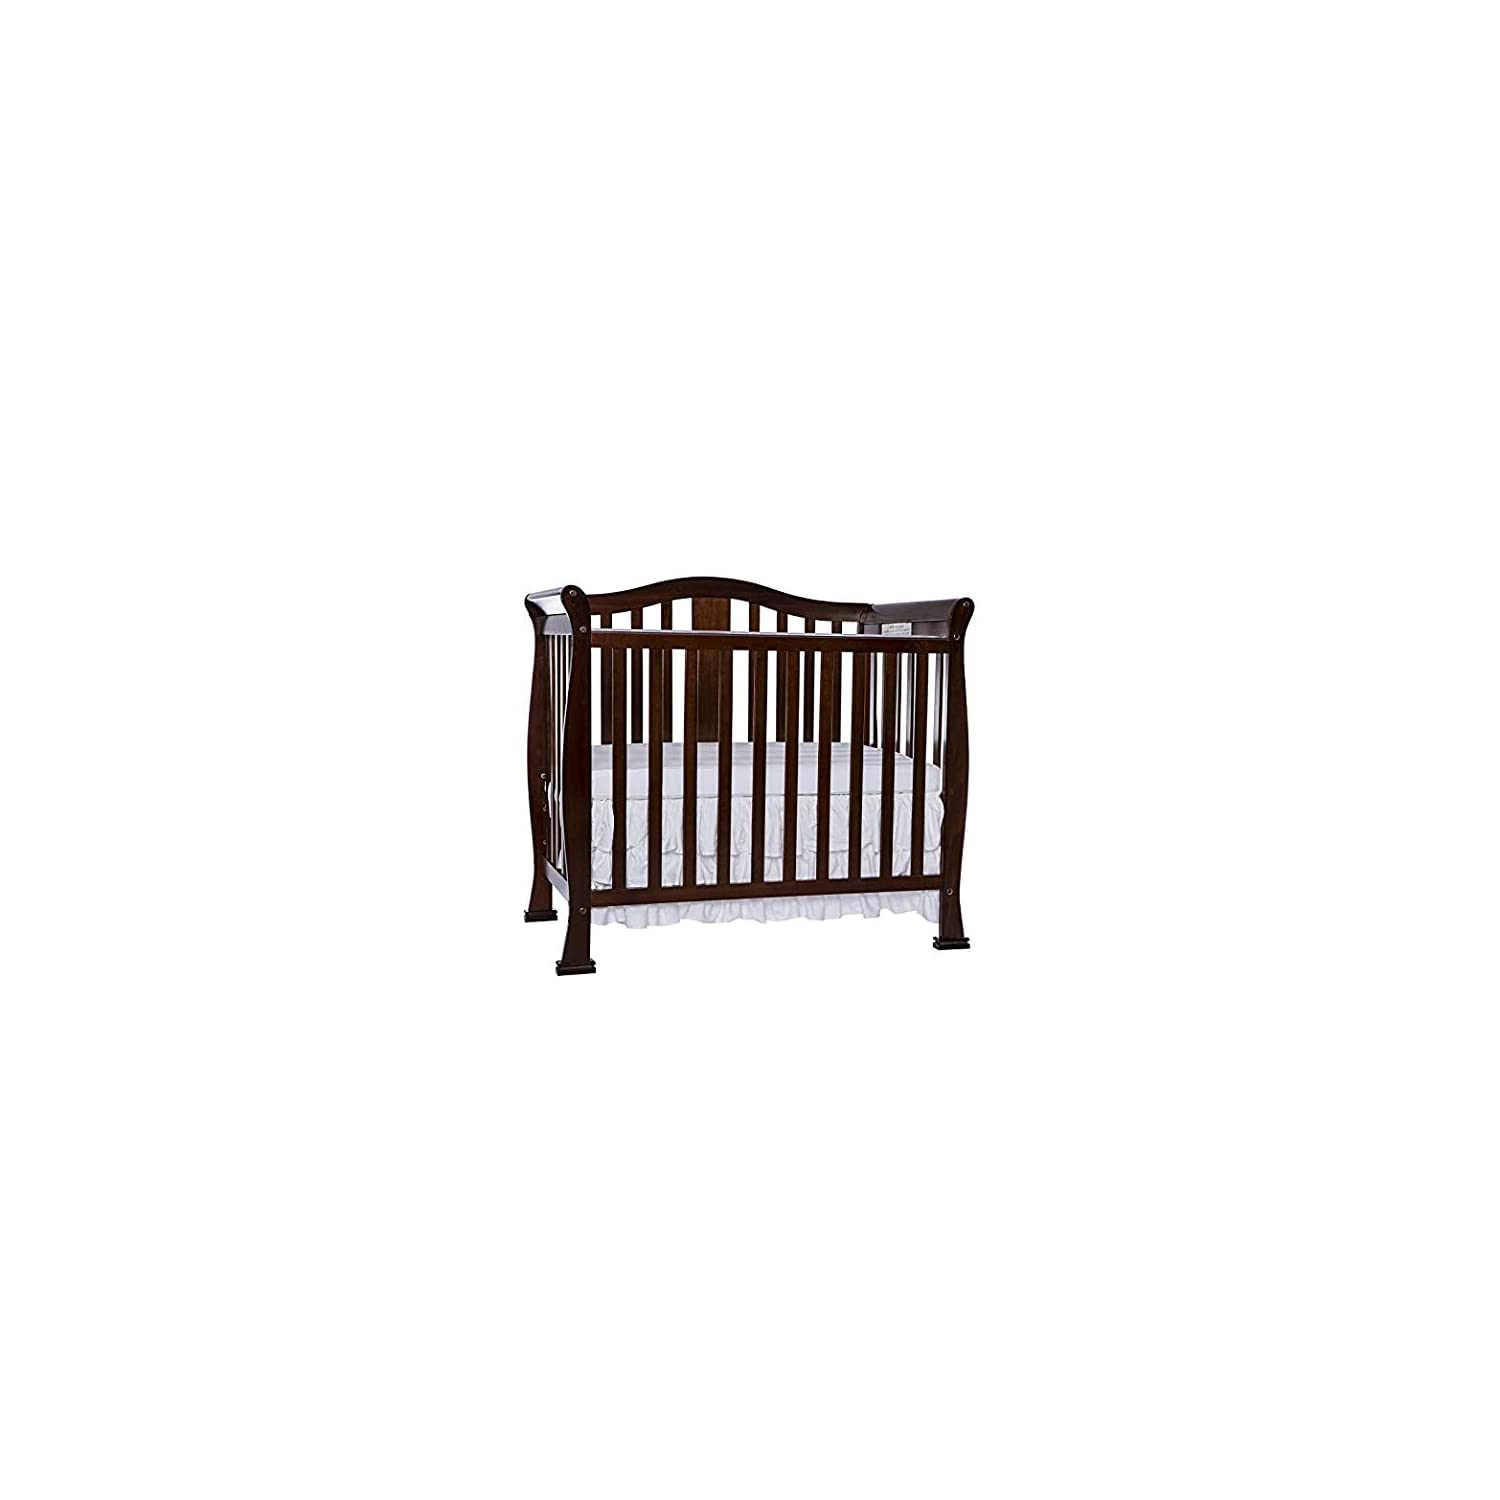 Dream On Me Addison 4 in 1 Convertible Mini Crib, Espresso with 3″ Spring Coil Mini/Portable Crib Mattress White/Blue.